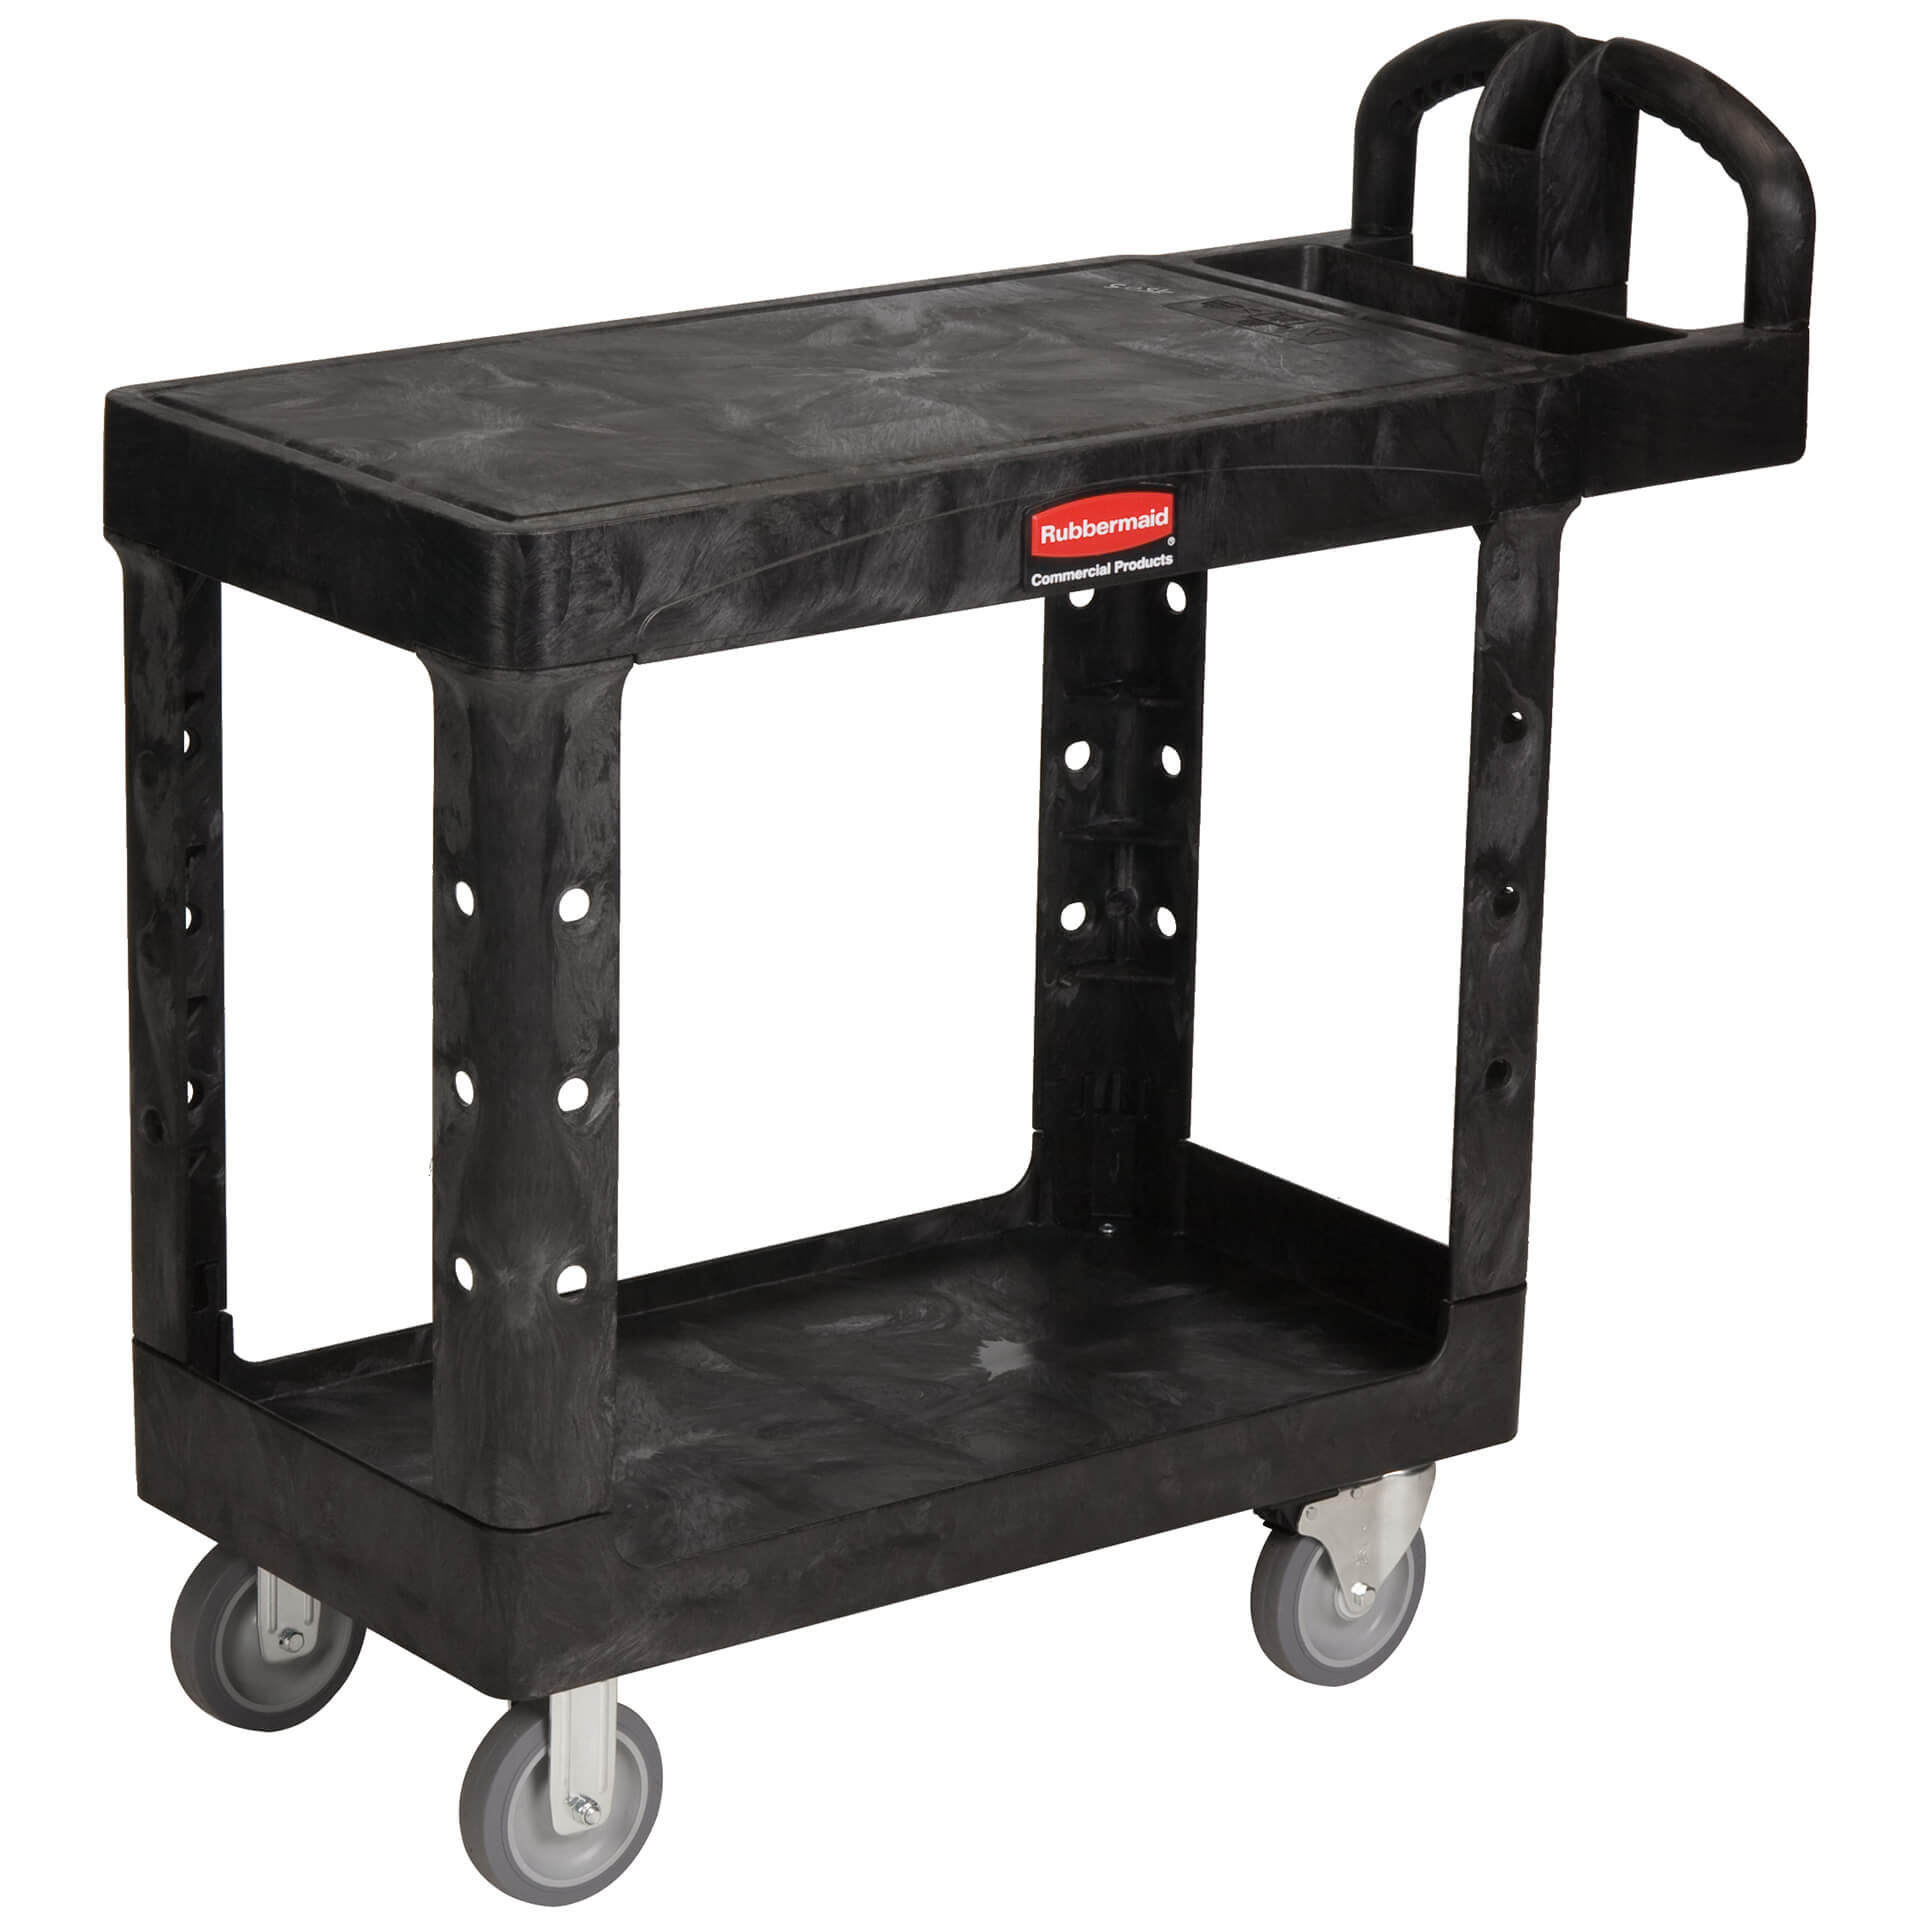 chariot-a-deux-tablette-rubbermaid